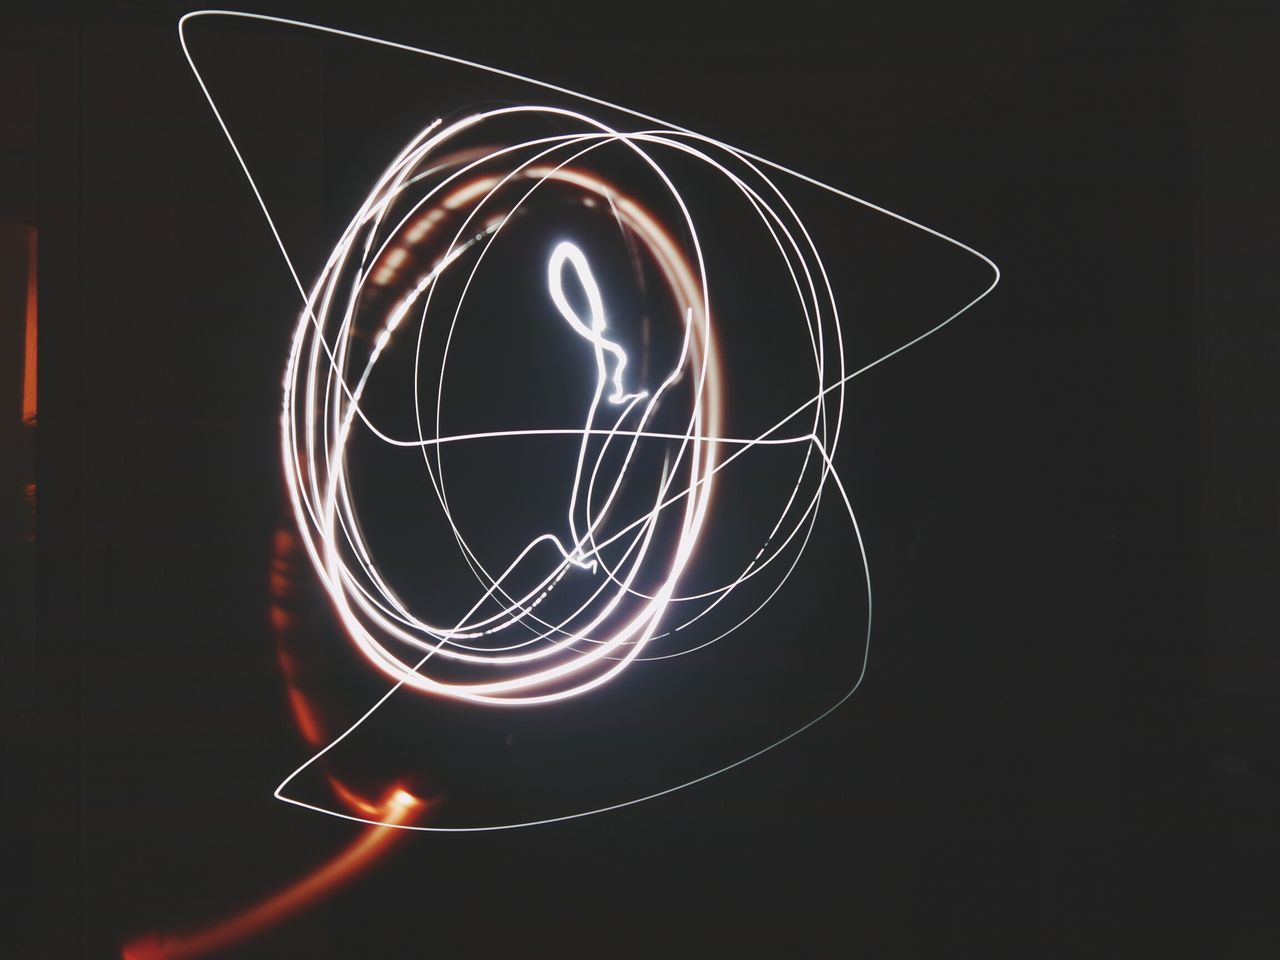 light painting, illuminated, long exposure, glowing, light trail, night, studio shot, black background, no people, lighting equipment, motion, swirl, close-up, indoors, electricity, wire wool